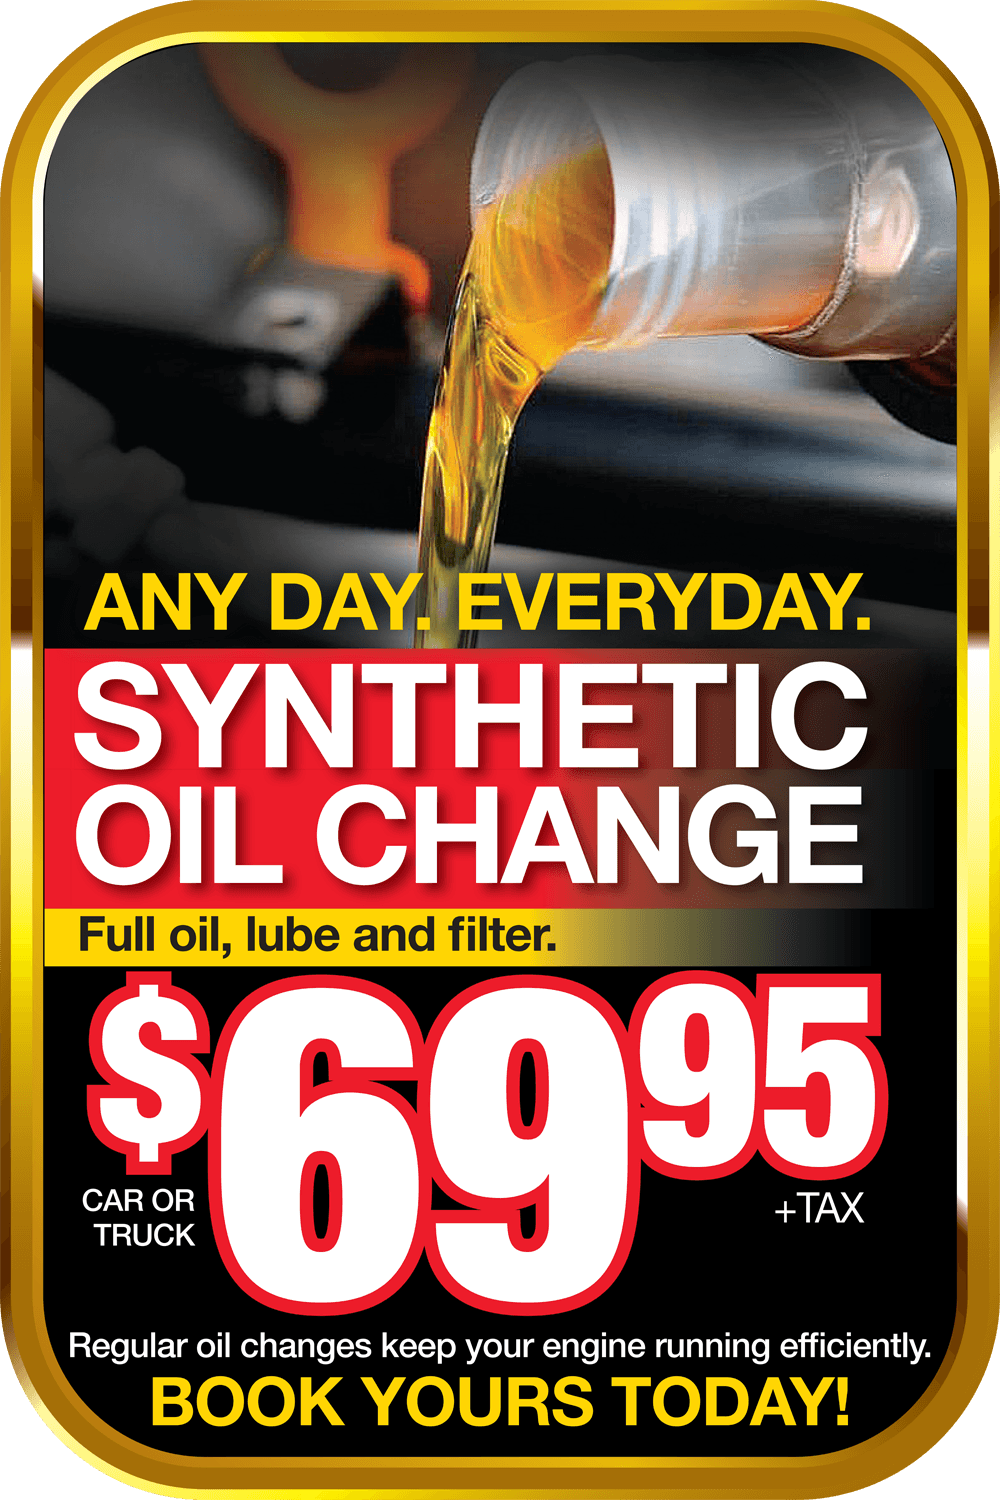 $69.95 Synthetic Oil Change - Georgetown Chevrolet Buick GMC